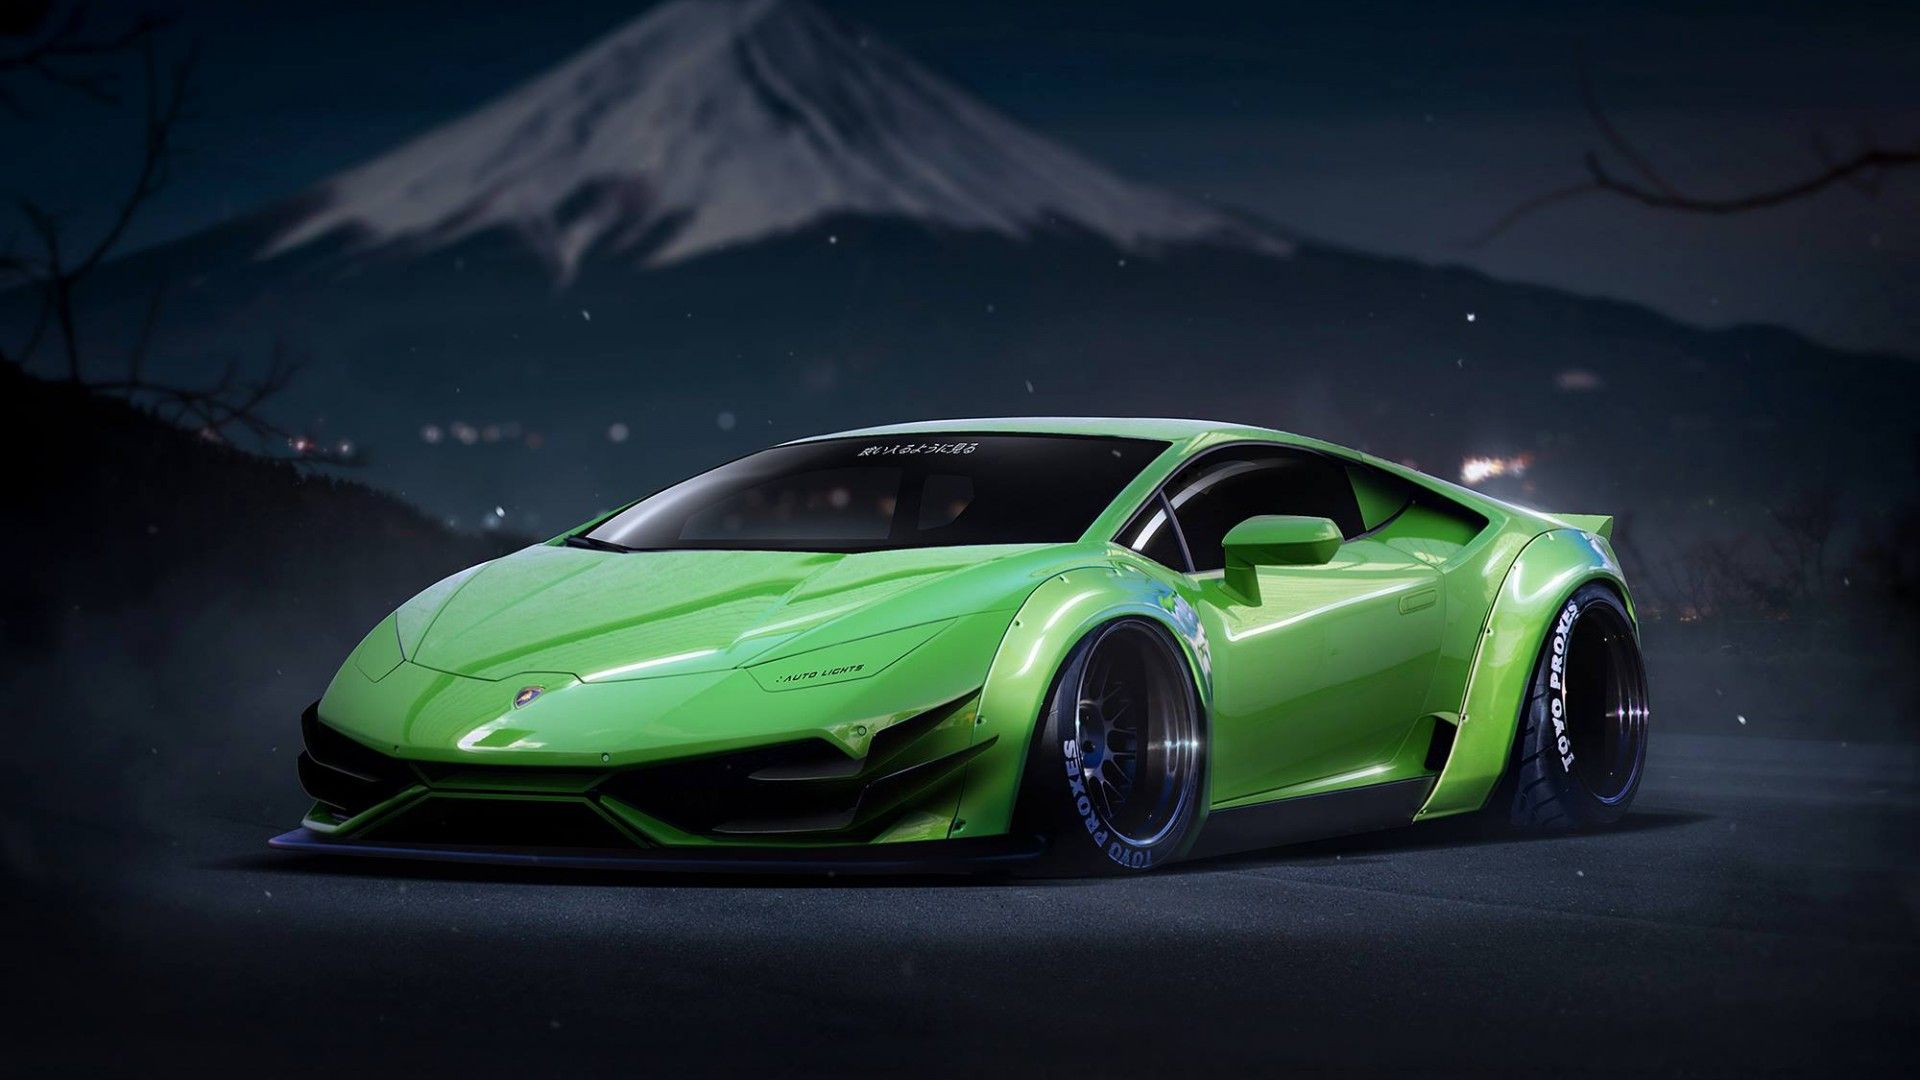 download wallpaper lamborghini huracan lp640 4 liberty walk lb - Lamborghini Huracan Wallpaper